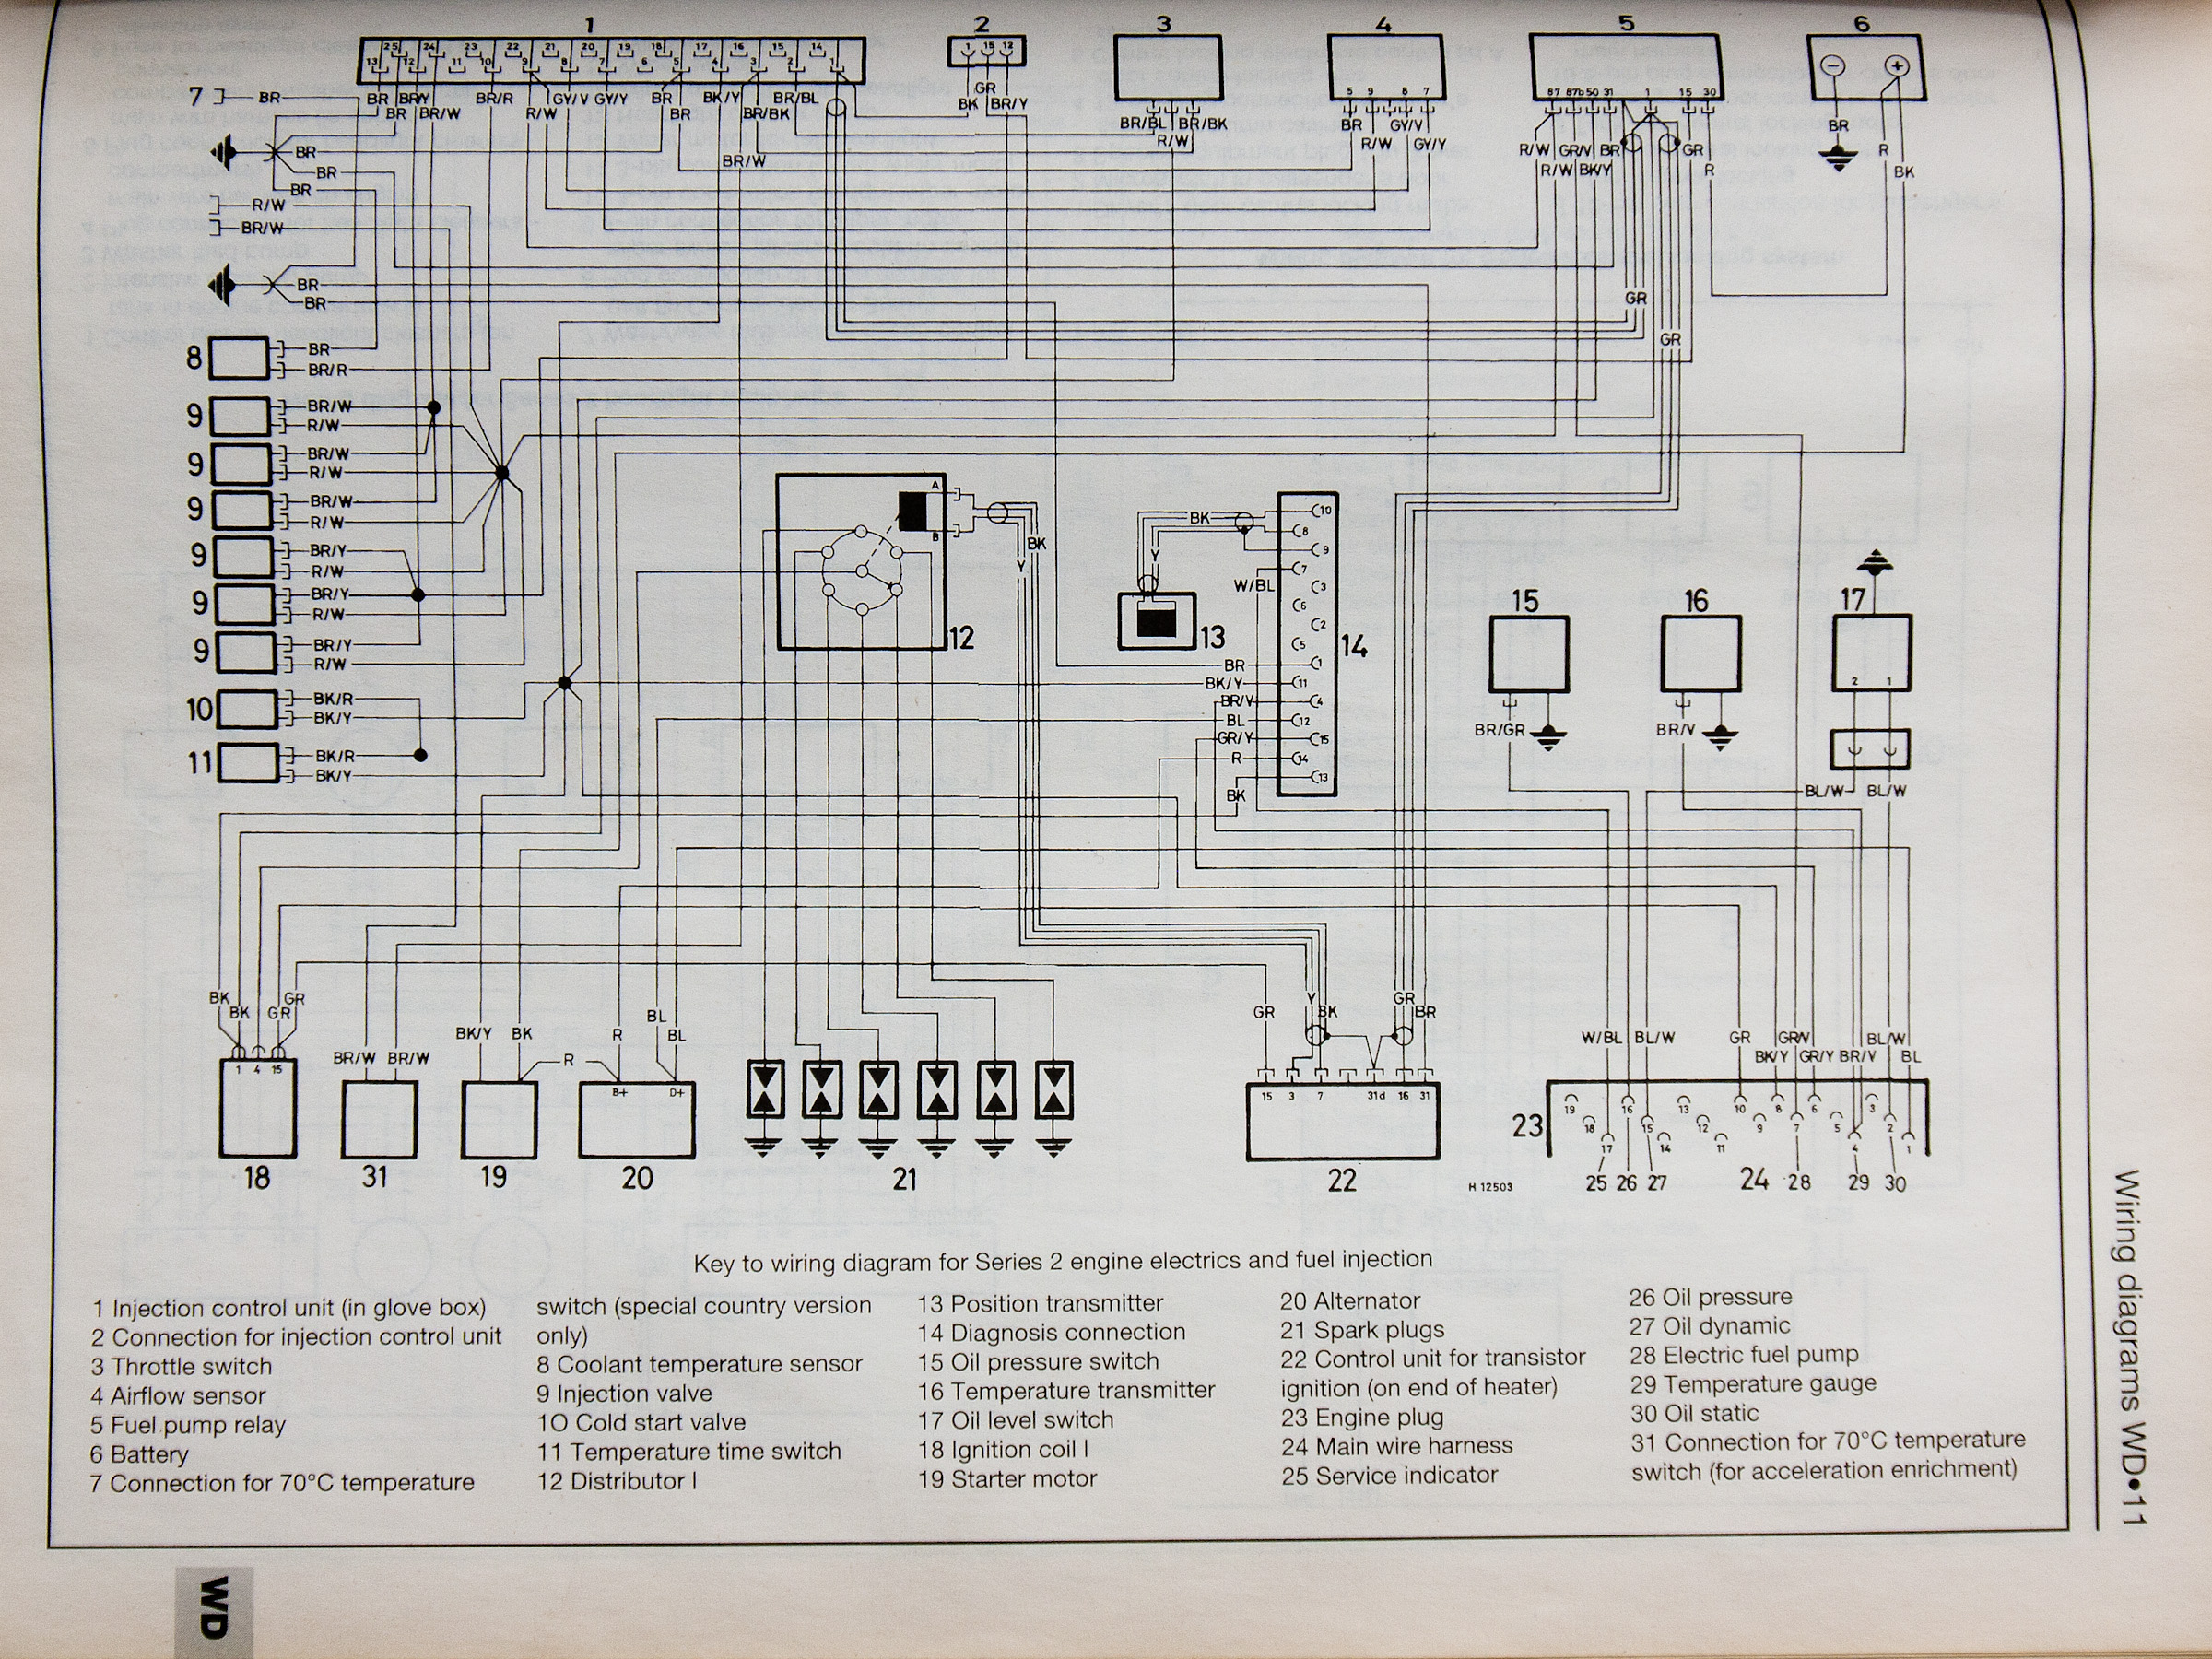 e30_ljetronic_001 e30_ljetronic_001 jpg e30 ignition wiring diagram at webbmarketing.co